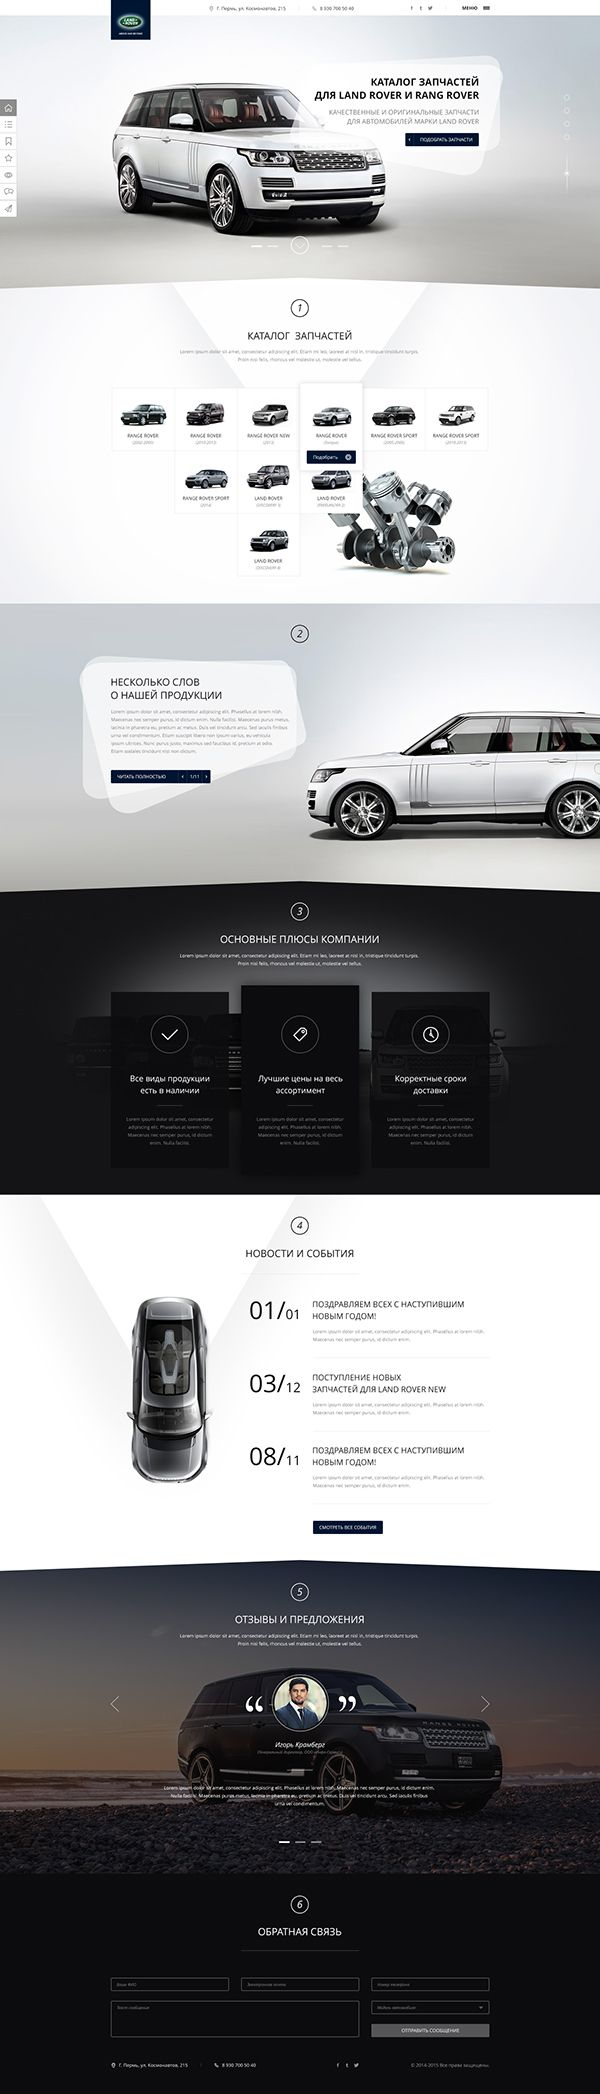 Land Rover on Behance